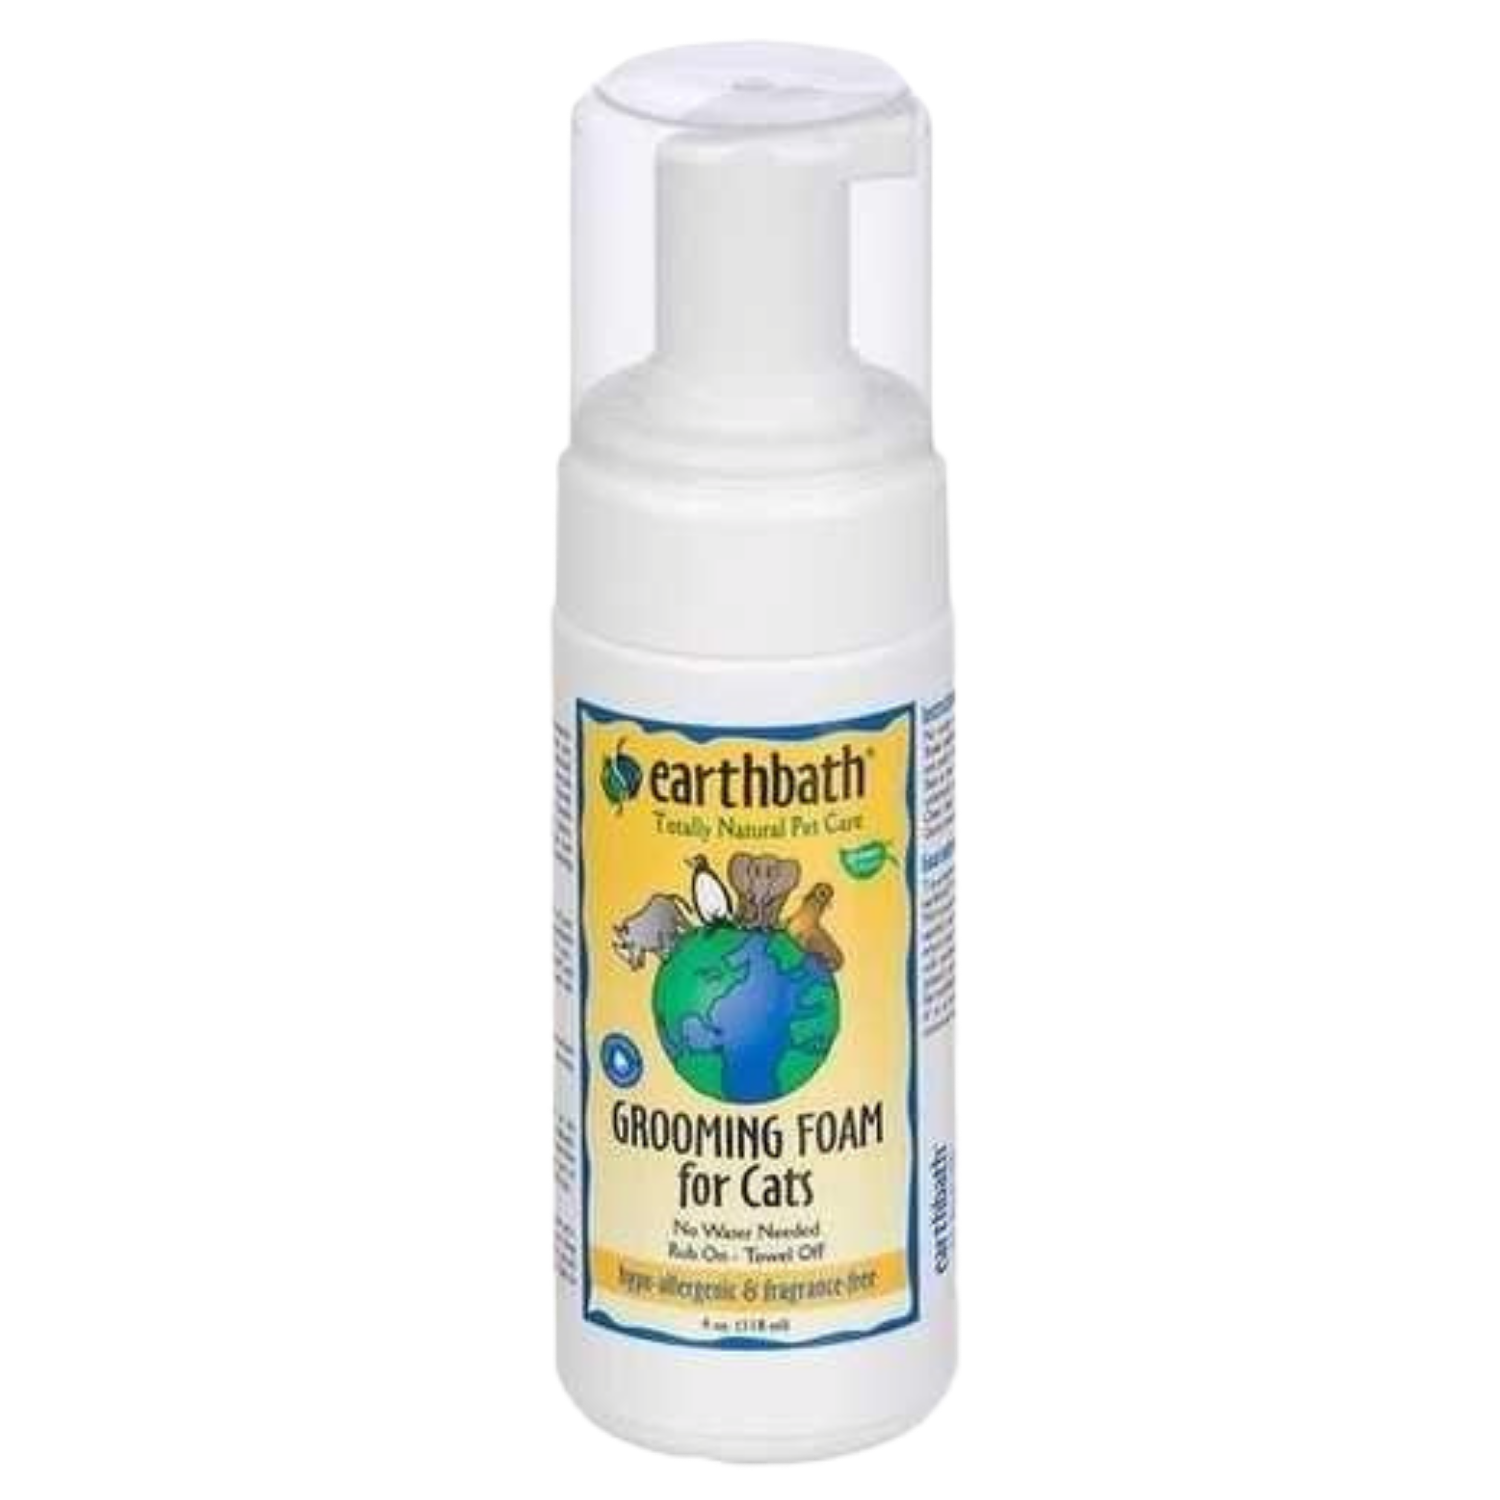 Earthbath Hypo-Allergenic Grooming Foam for Cats (Fragrance Free)